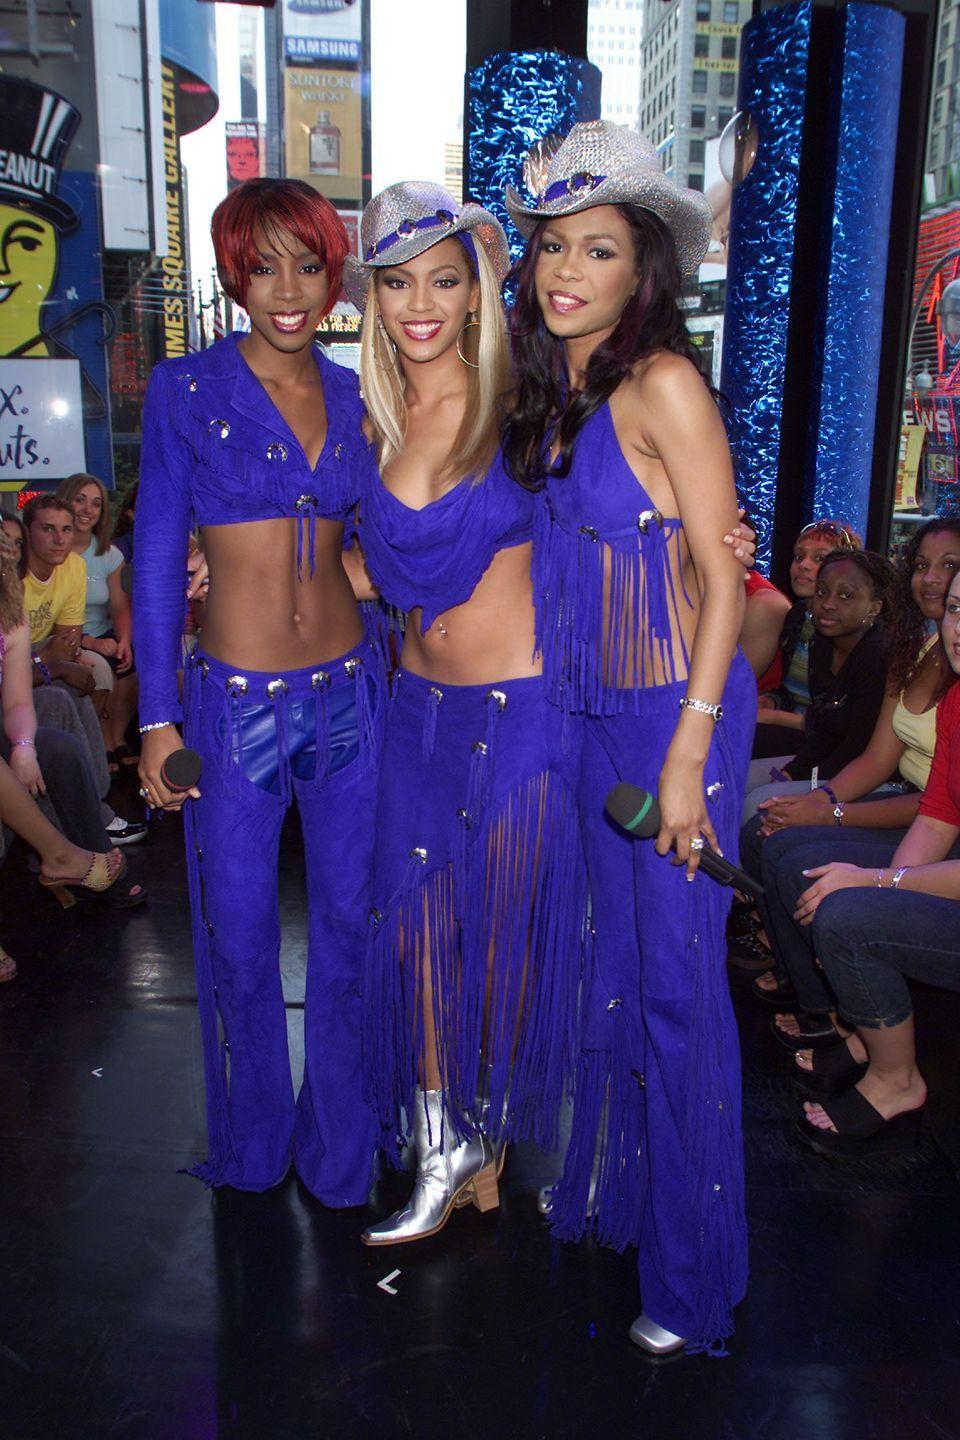 <p>Behold: The Queens of the coordinated outfits. As for why Kelly Rowland performed sans glittery cowboy hat, the jury's still out on that one. </p>